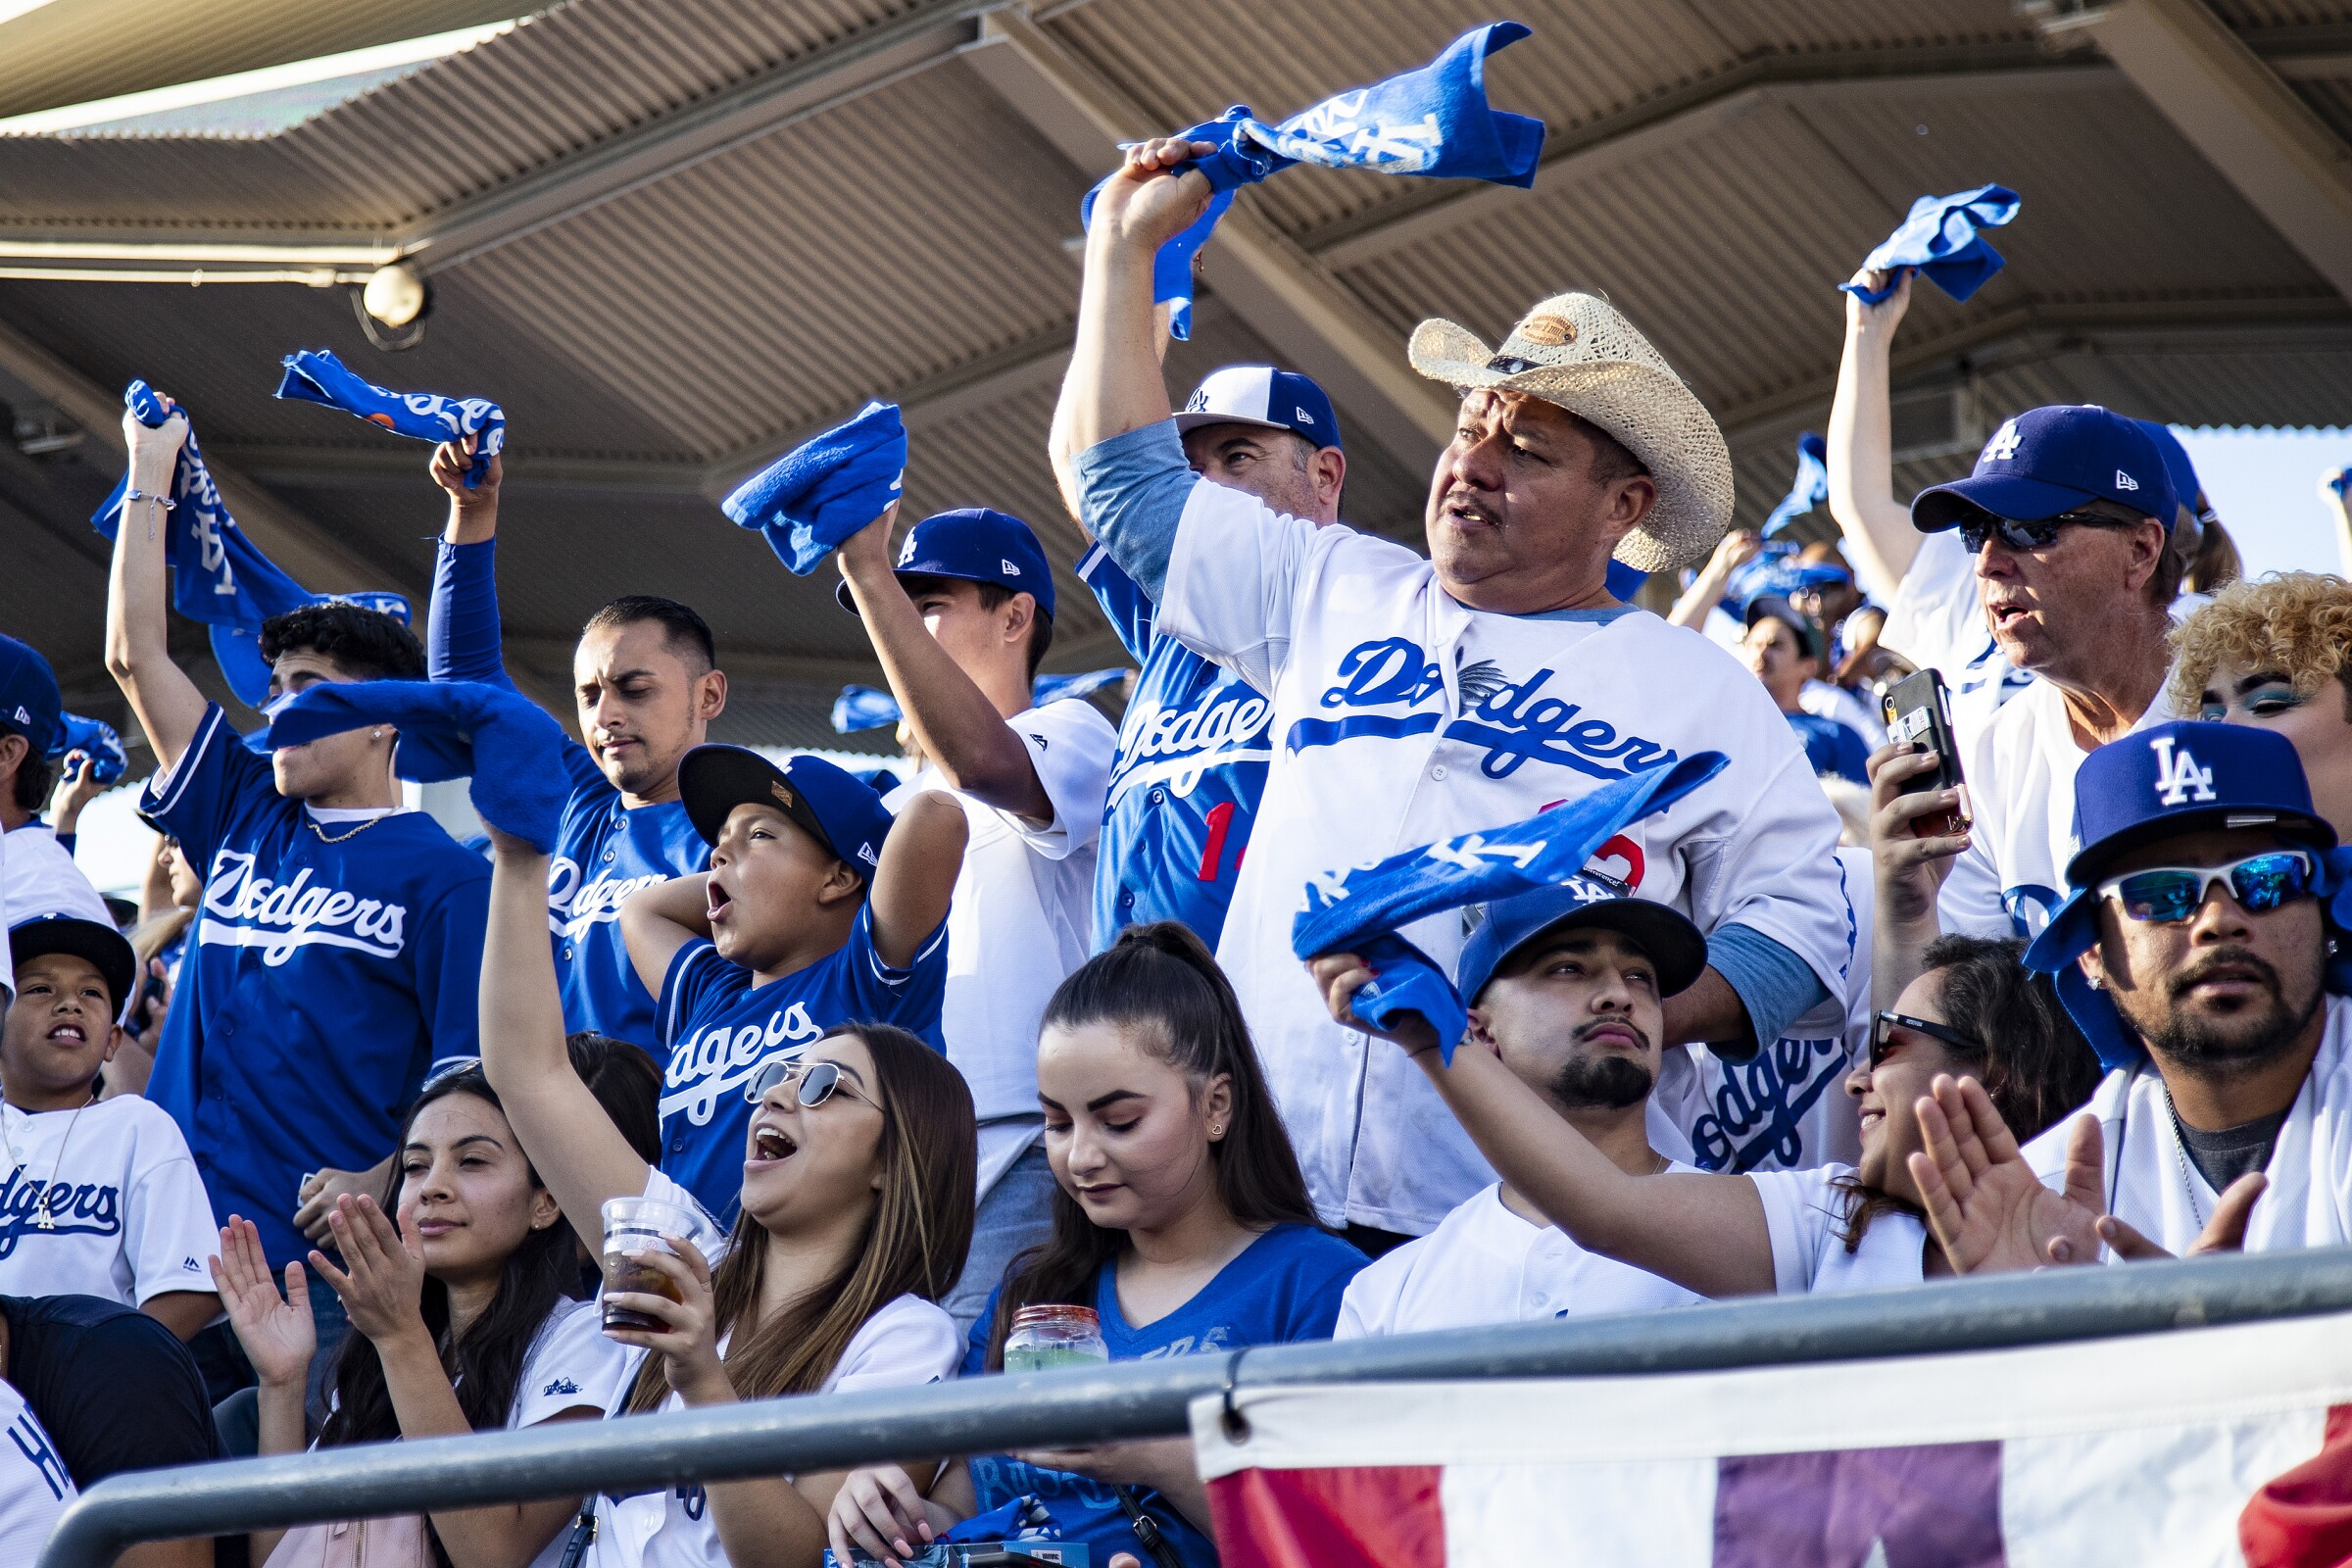 People in Dodgers jerseys stand in the bleachers, yell and wave blue and white bandannas.